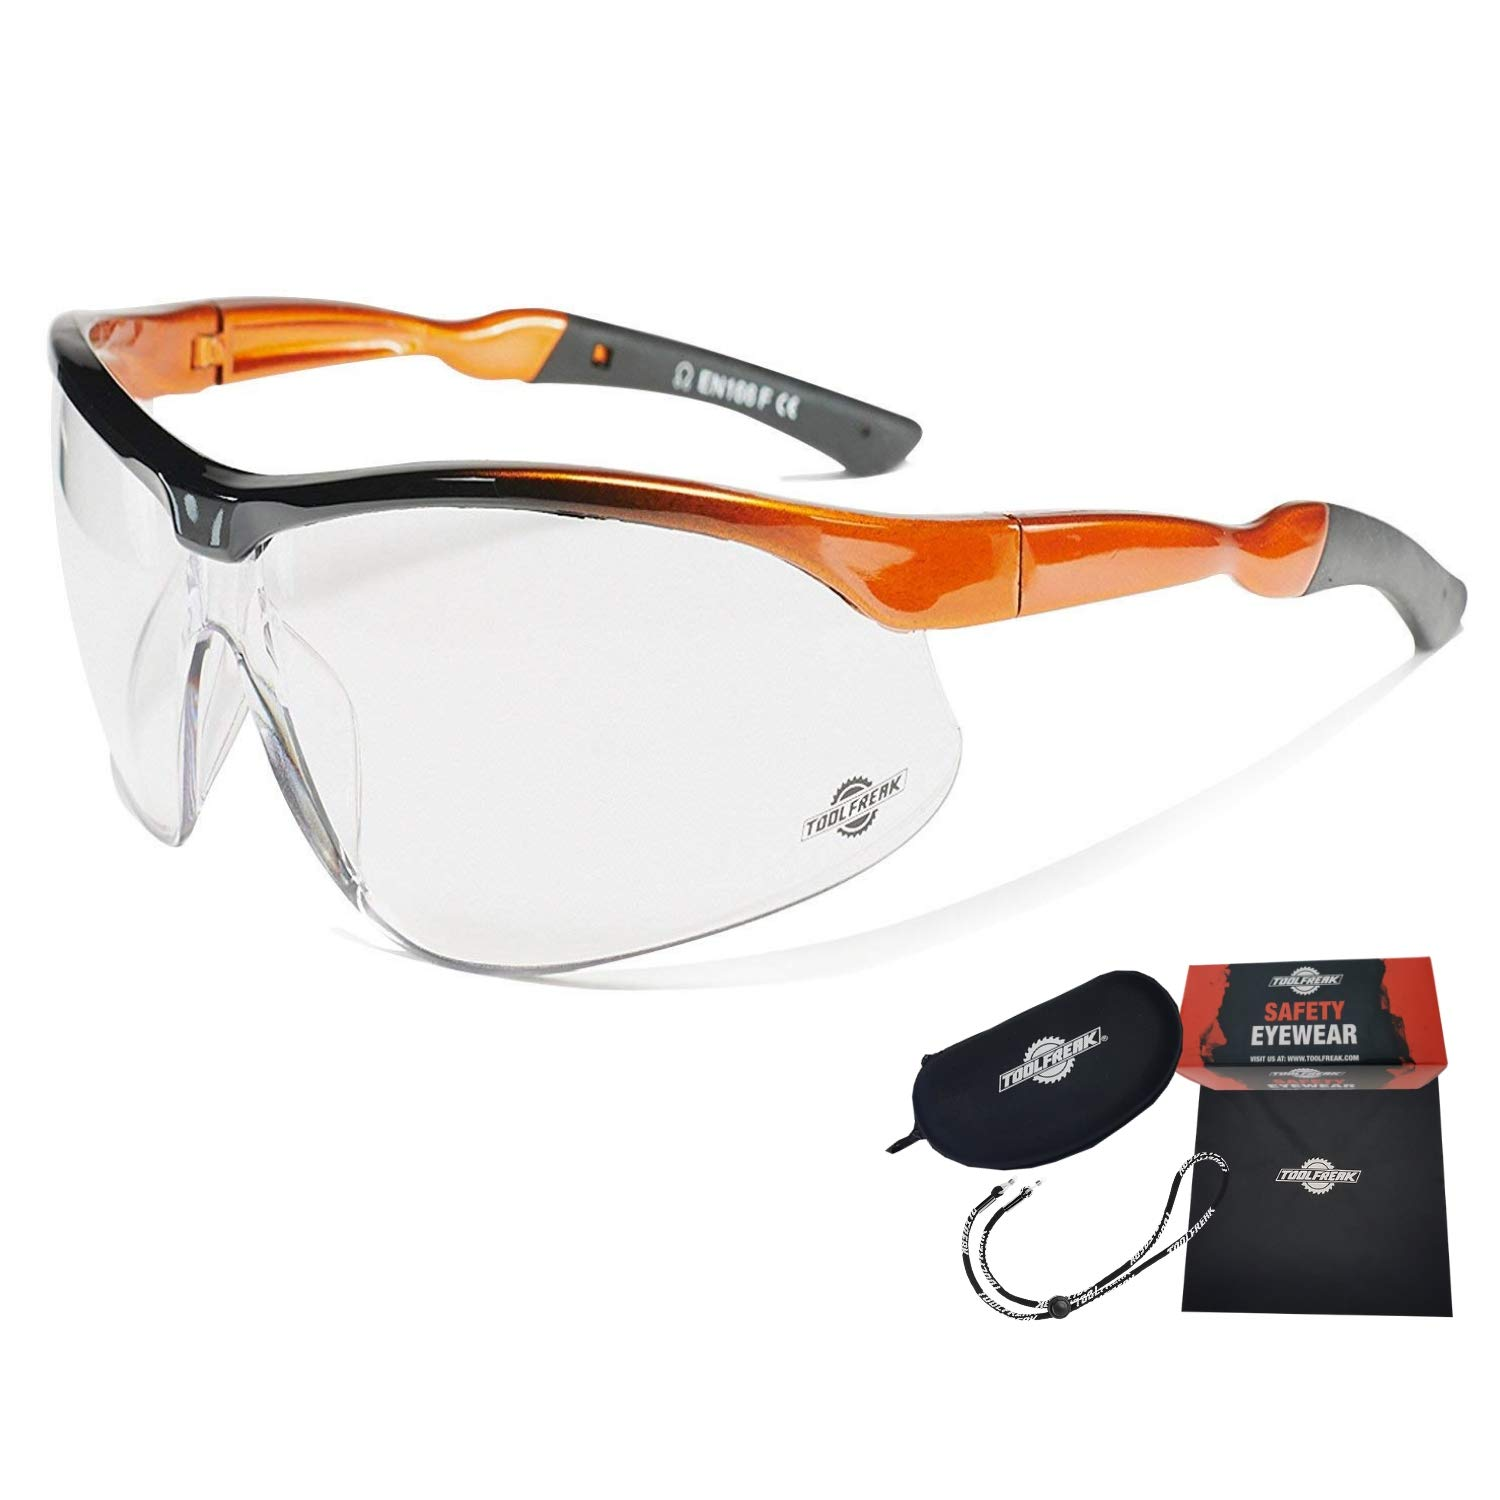 ToolFreak Agent Work & Sports Safety Glasses with Distortion Free Clear Wraparound Lenses, ANSI z87+ Rated, Impact & UV Protection, Hard Case & Cloth + Neck Cord